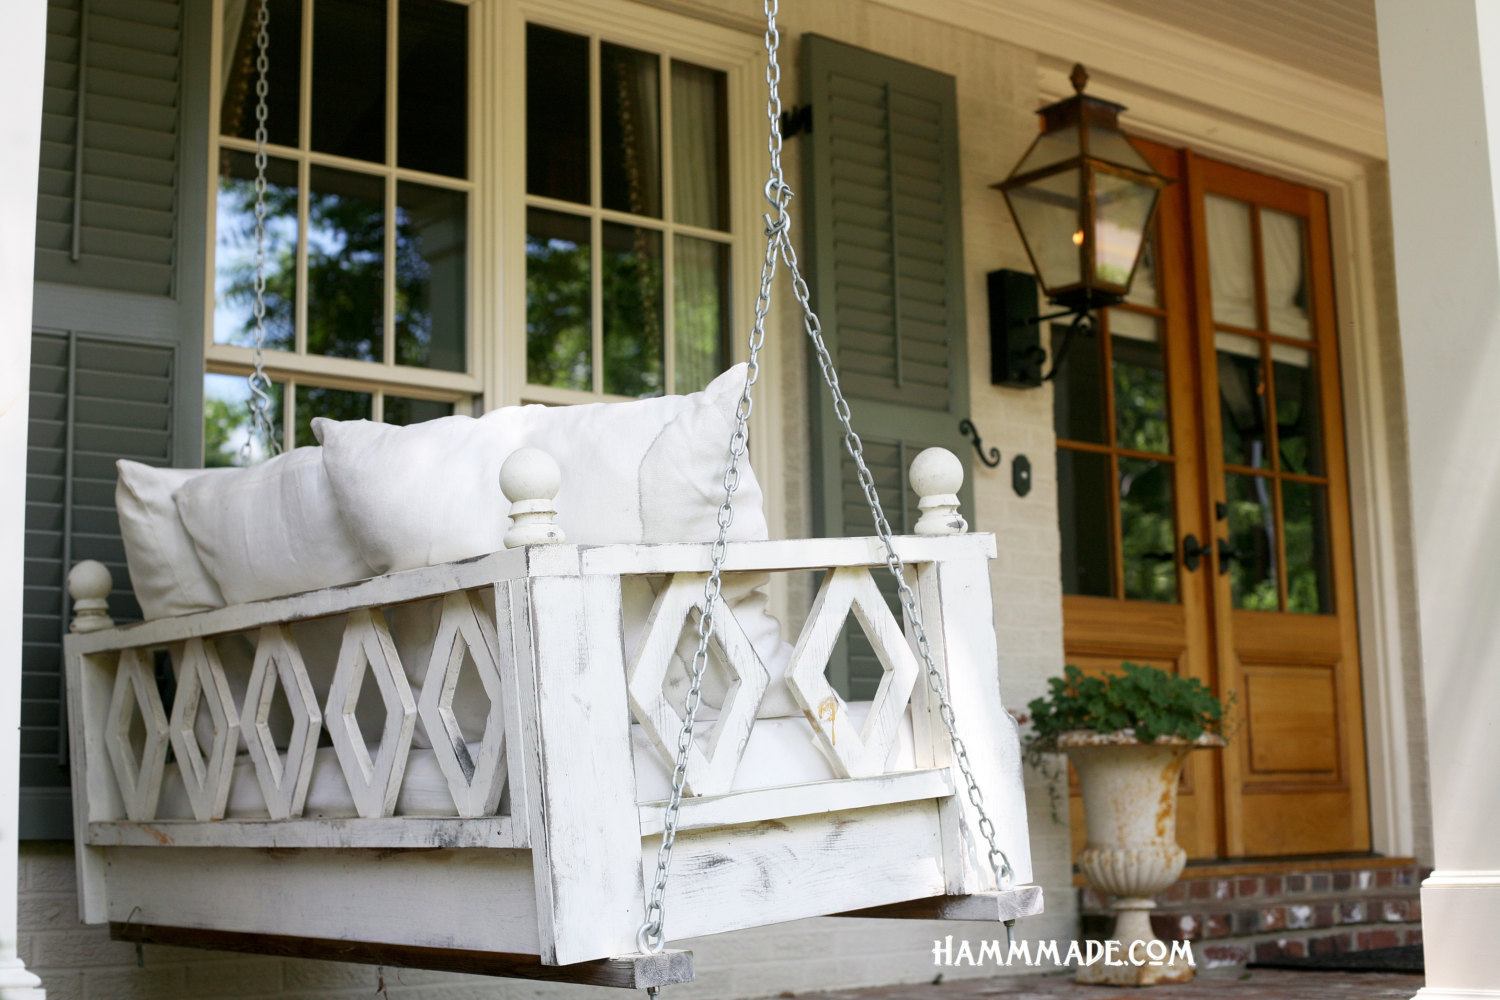 15 Custom Handcrafted Porch Swing Designs